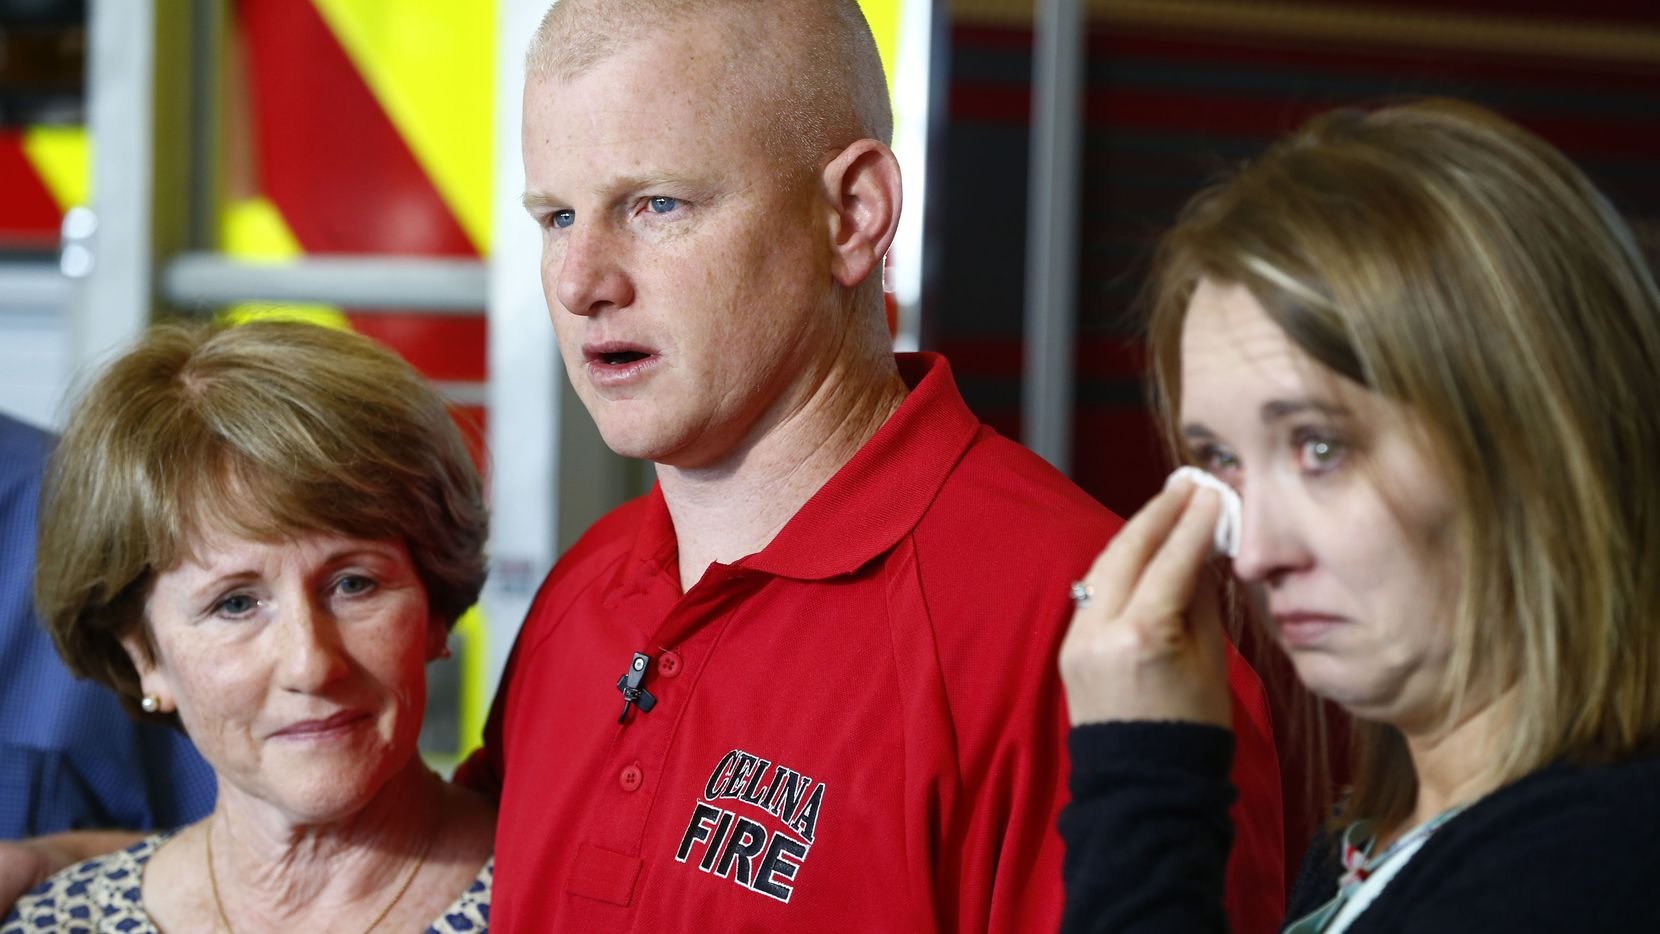 Celina firefighter Andrew Needum; his mother, Julie Needum; and his wife, Stephanie Needum, talked Thursday about their experience on Southwest Airlines Flight 1380.